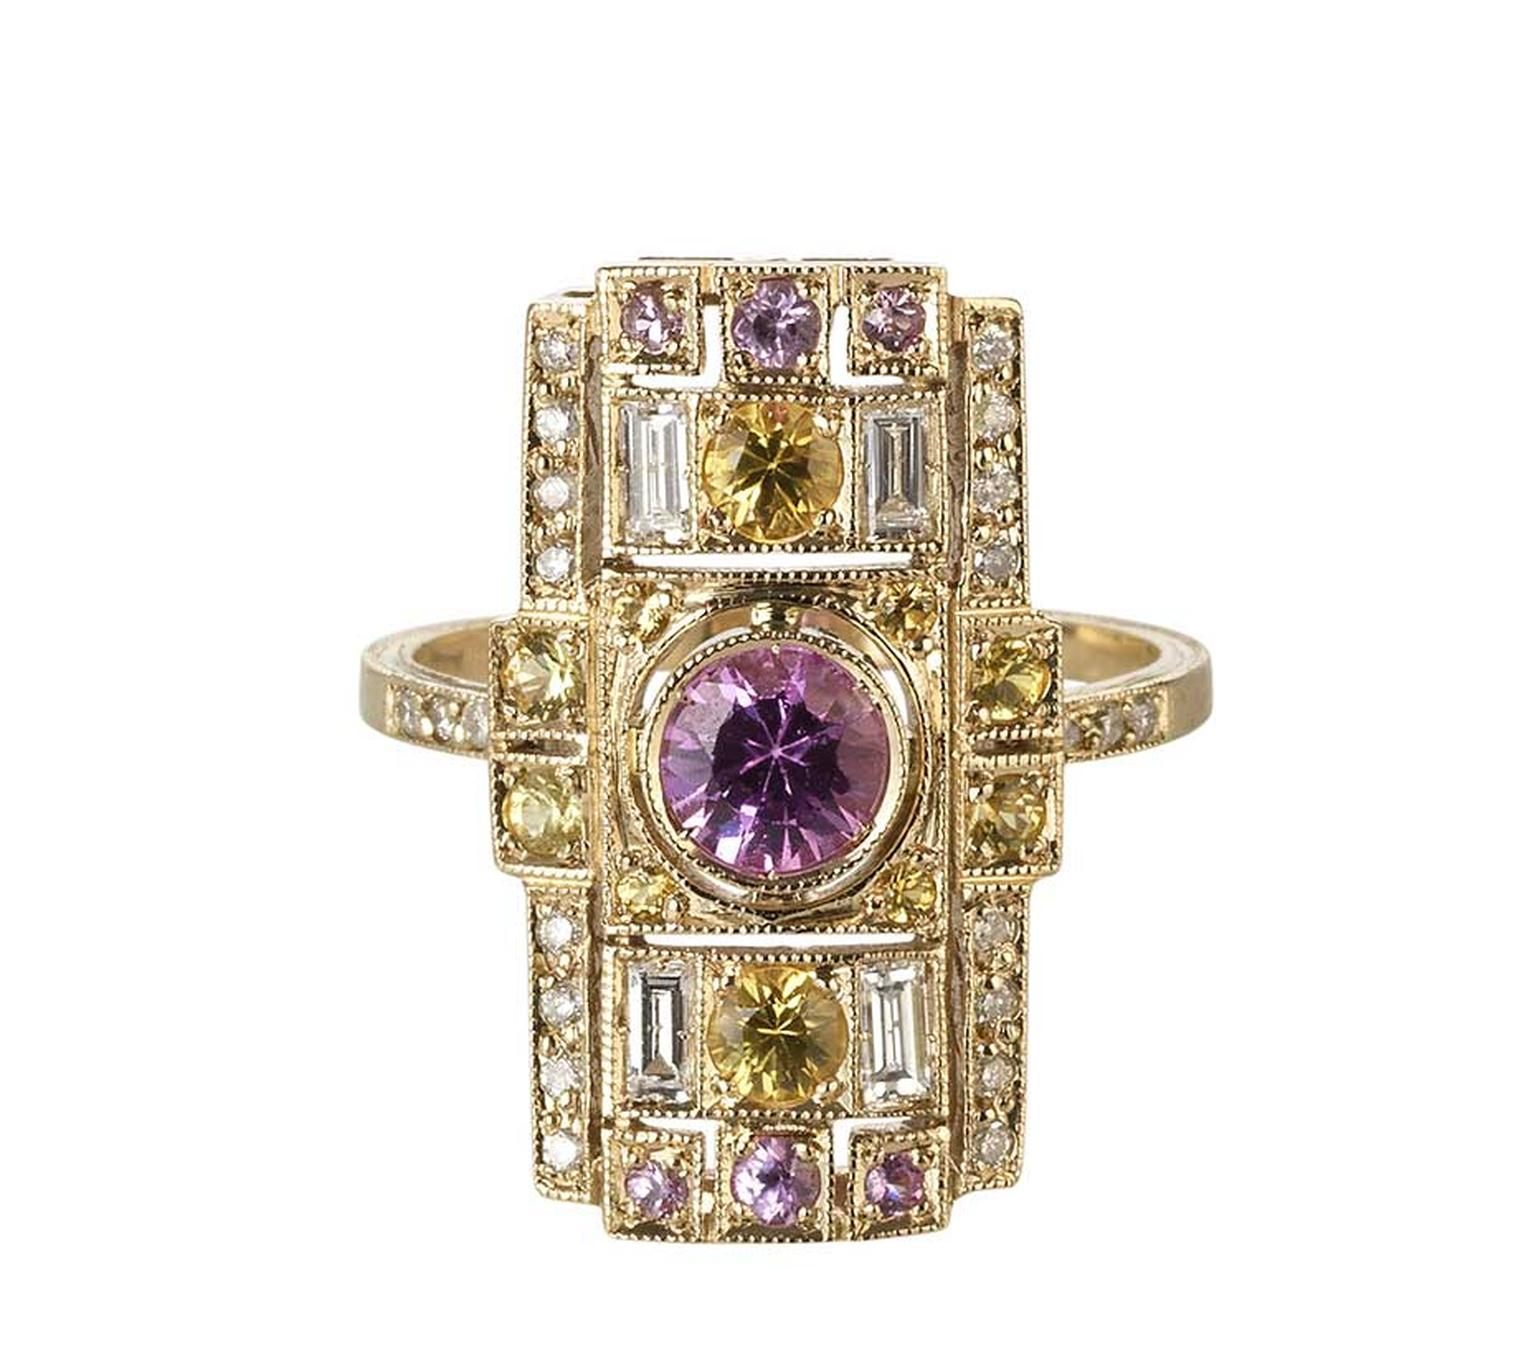 Sabine G for Latest Revival one-of-a-kind Harlequin yellow gold ring featuring pink and yellow sapphires and diamonds.